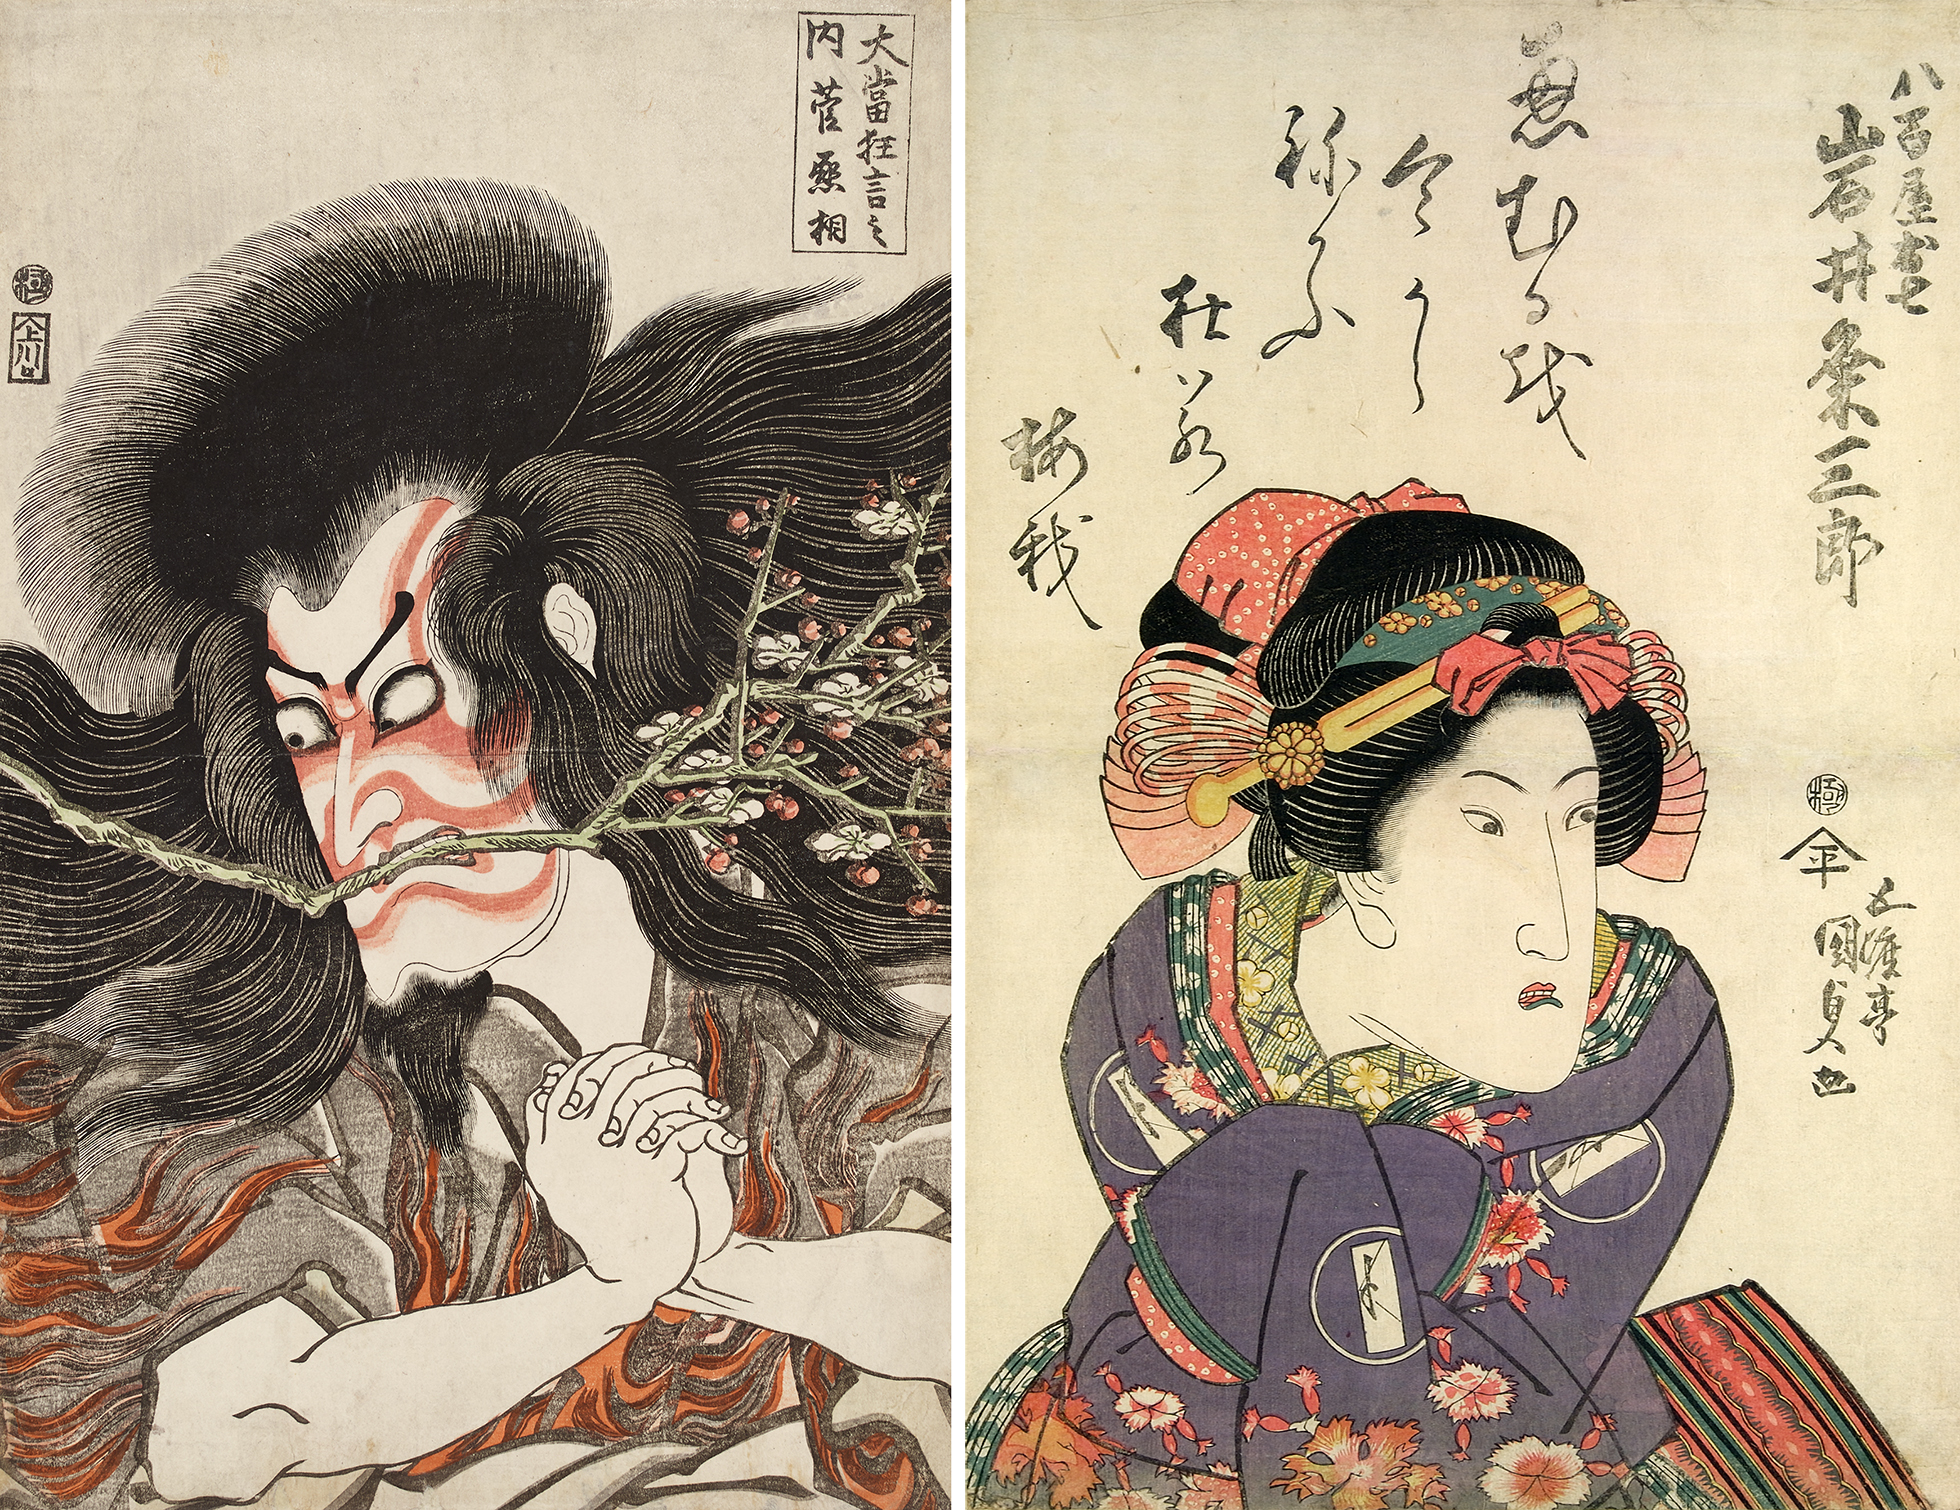 Two colour woodblock prints showing famous actors. On the left is  Ichikawa Danjūrō VII, depicted with long flowing hair and beard holding a branch in his teeth. He has red face make-up. On the right Iwai Kumesaburō II is depicted in women's clothes - with bows in his hair and elaborate clothes.